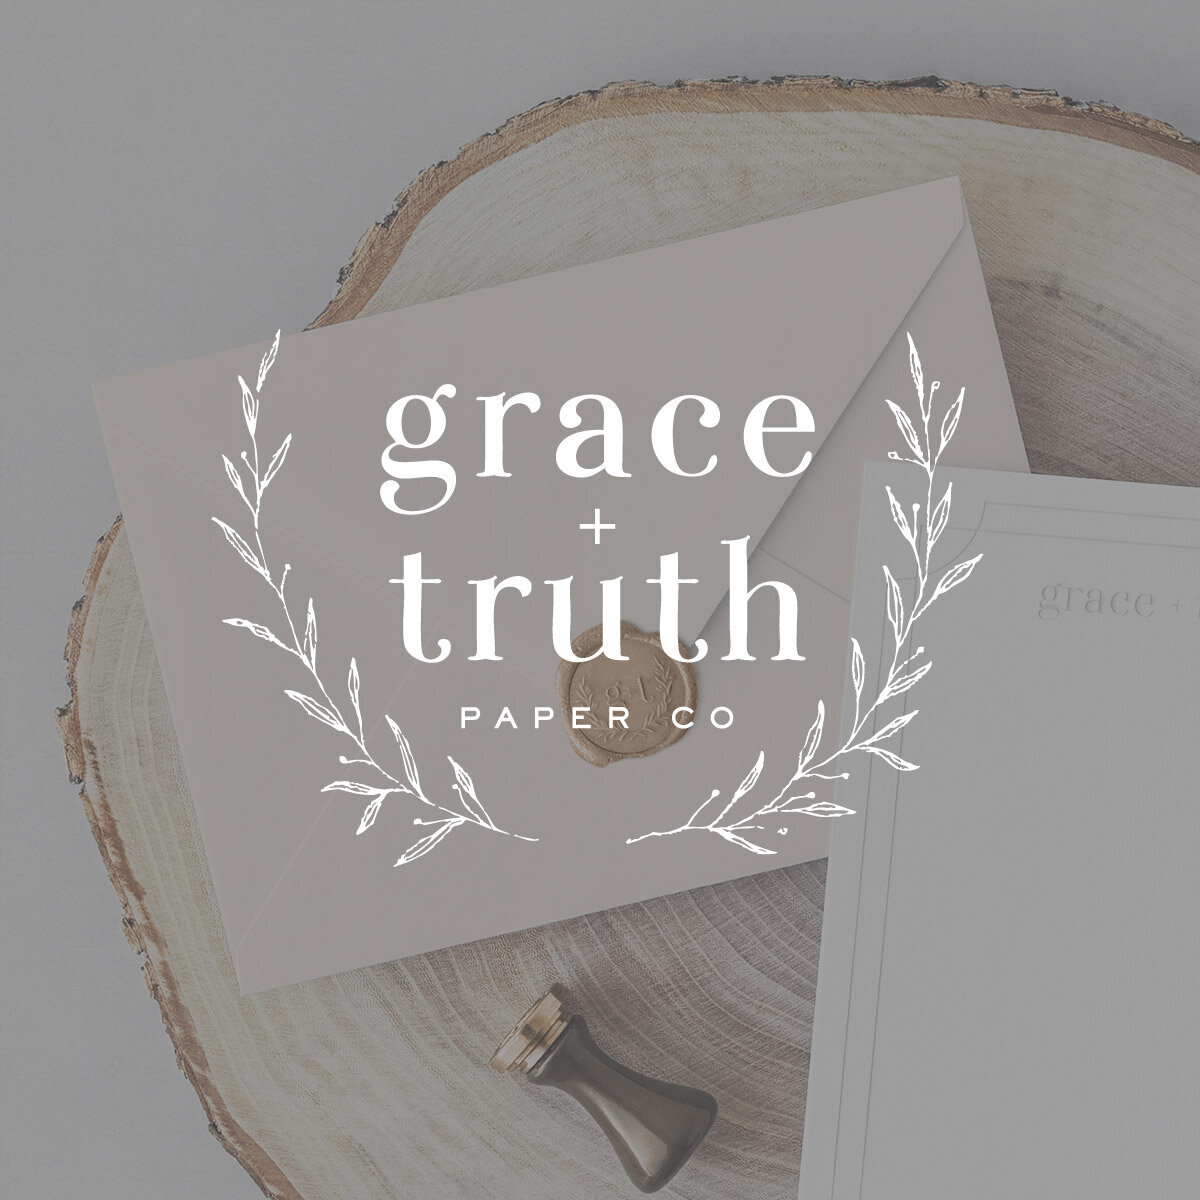 HMD_Portfoio-Thumb_Grace-And-Truth-Paper-Co